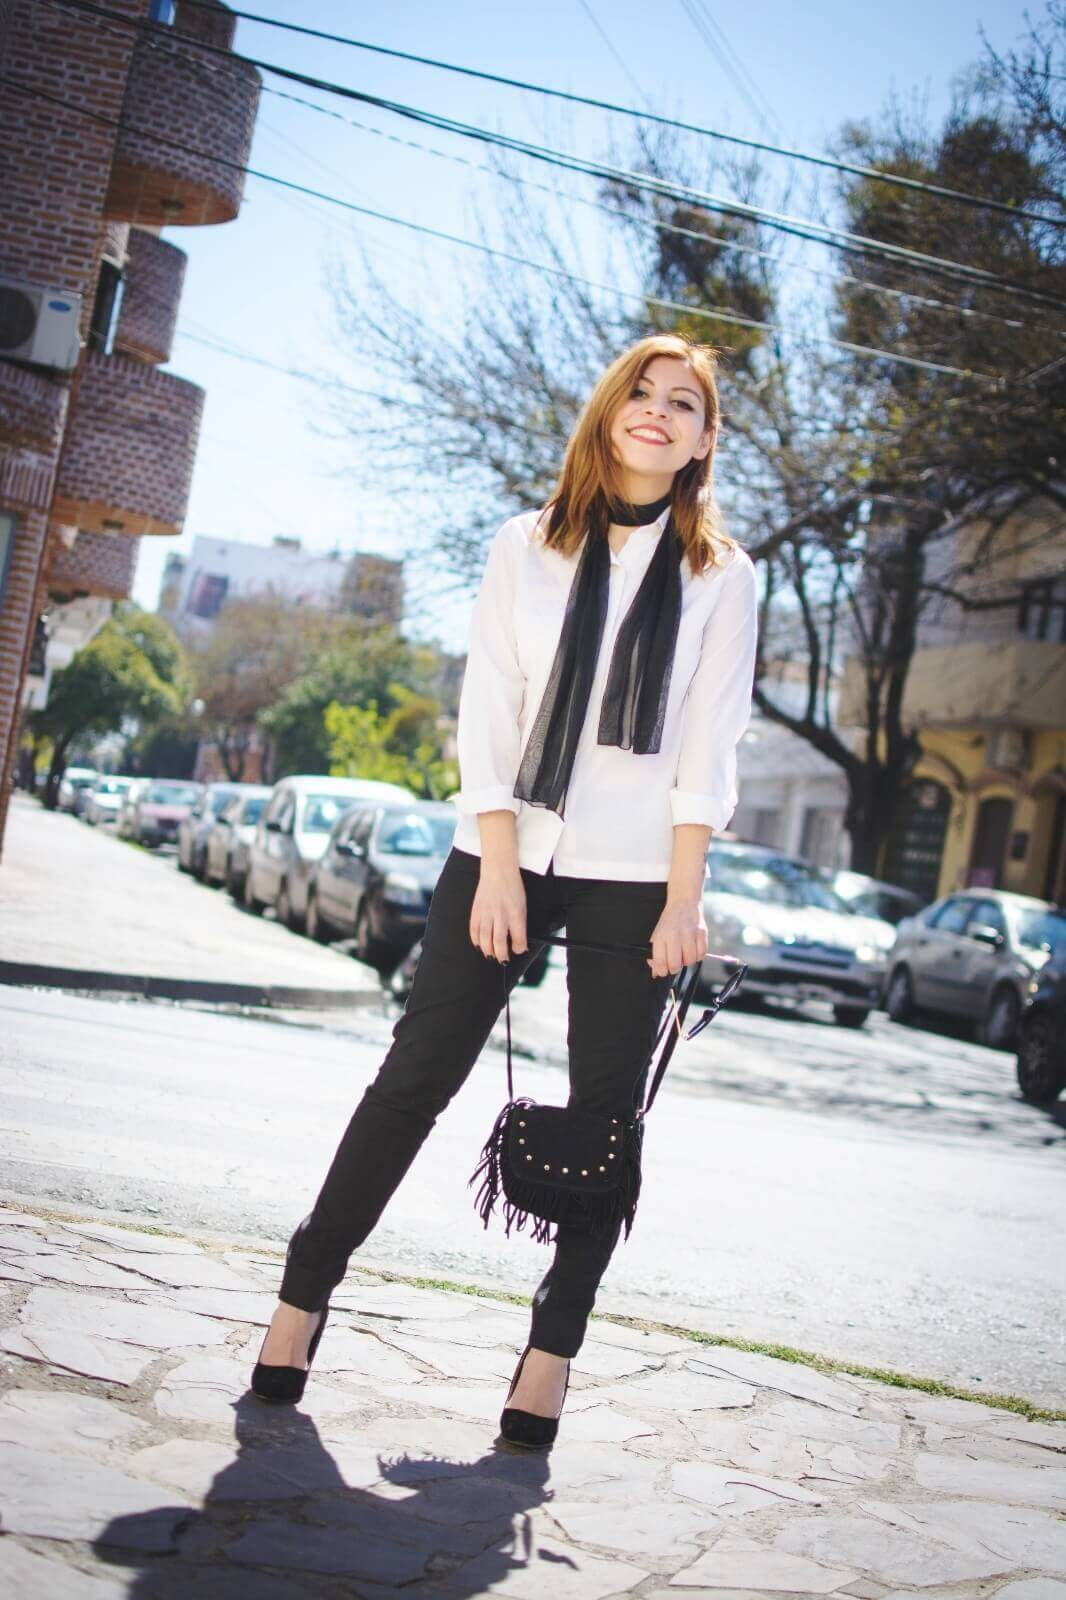 white-shirt-skinny-scarf-black-jeans-zaful-black-suede-shoes-deborah-ferrero-style-by-deb01